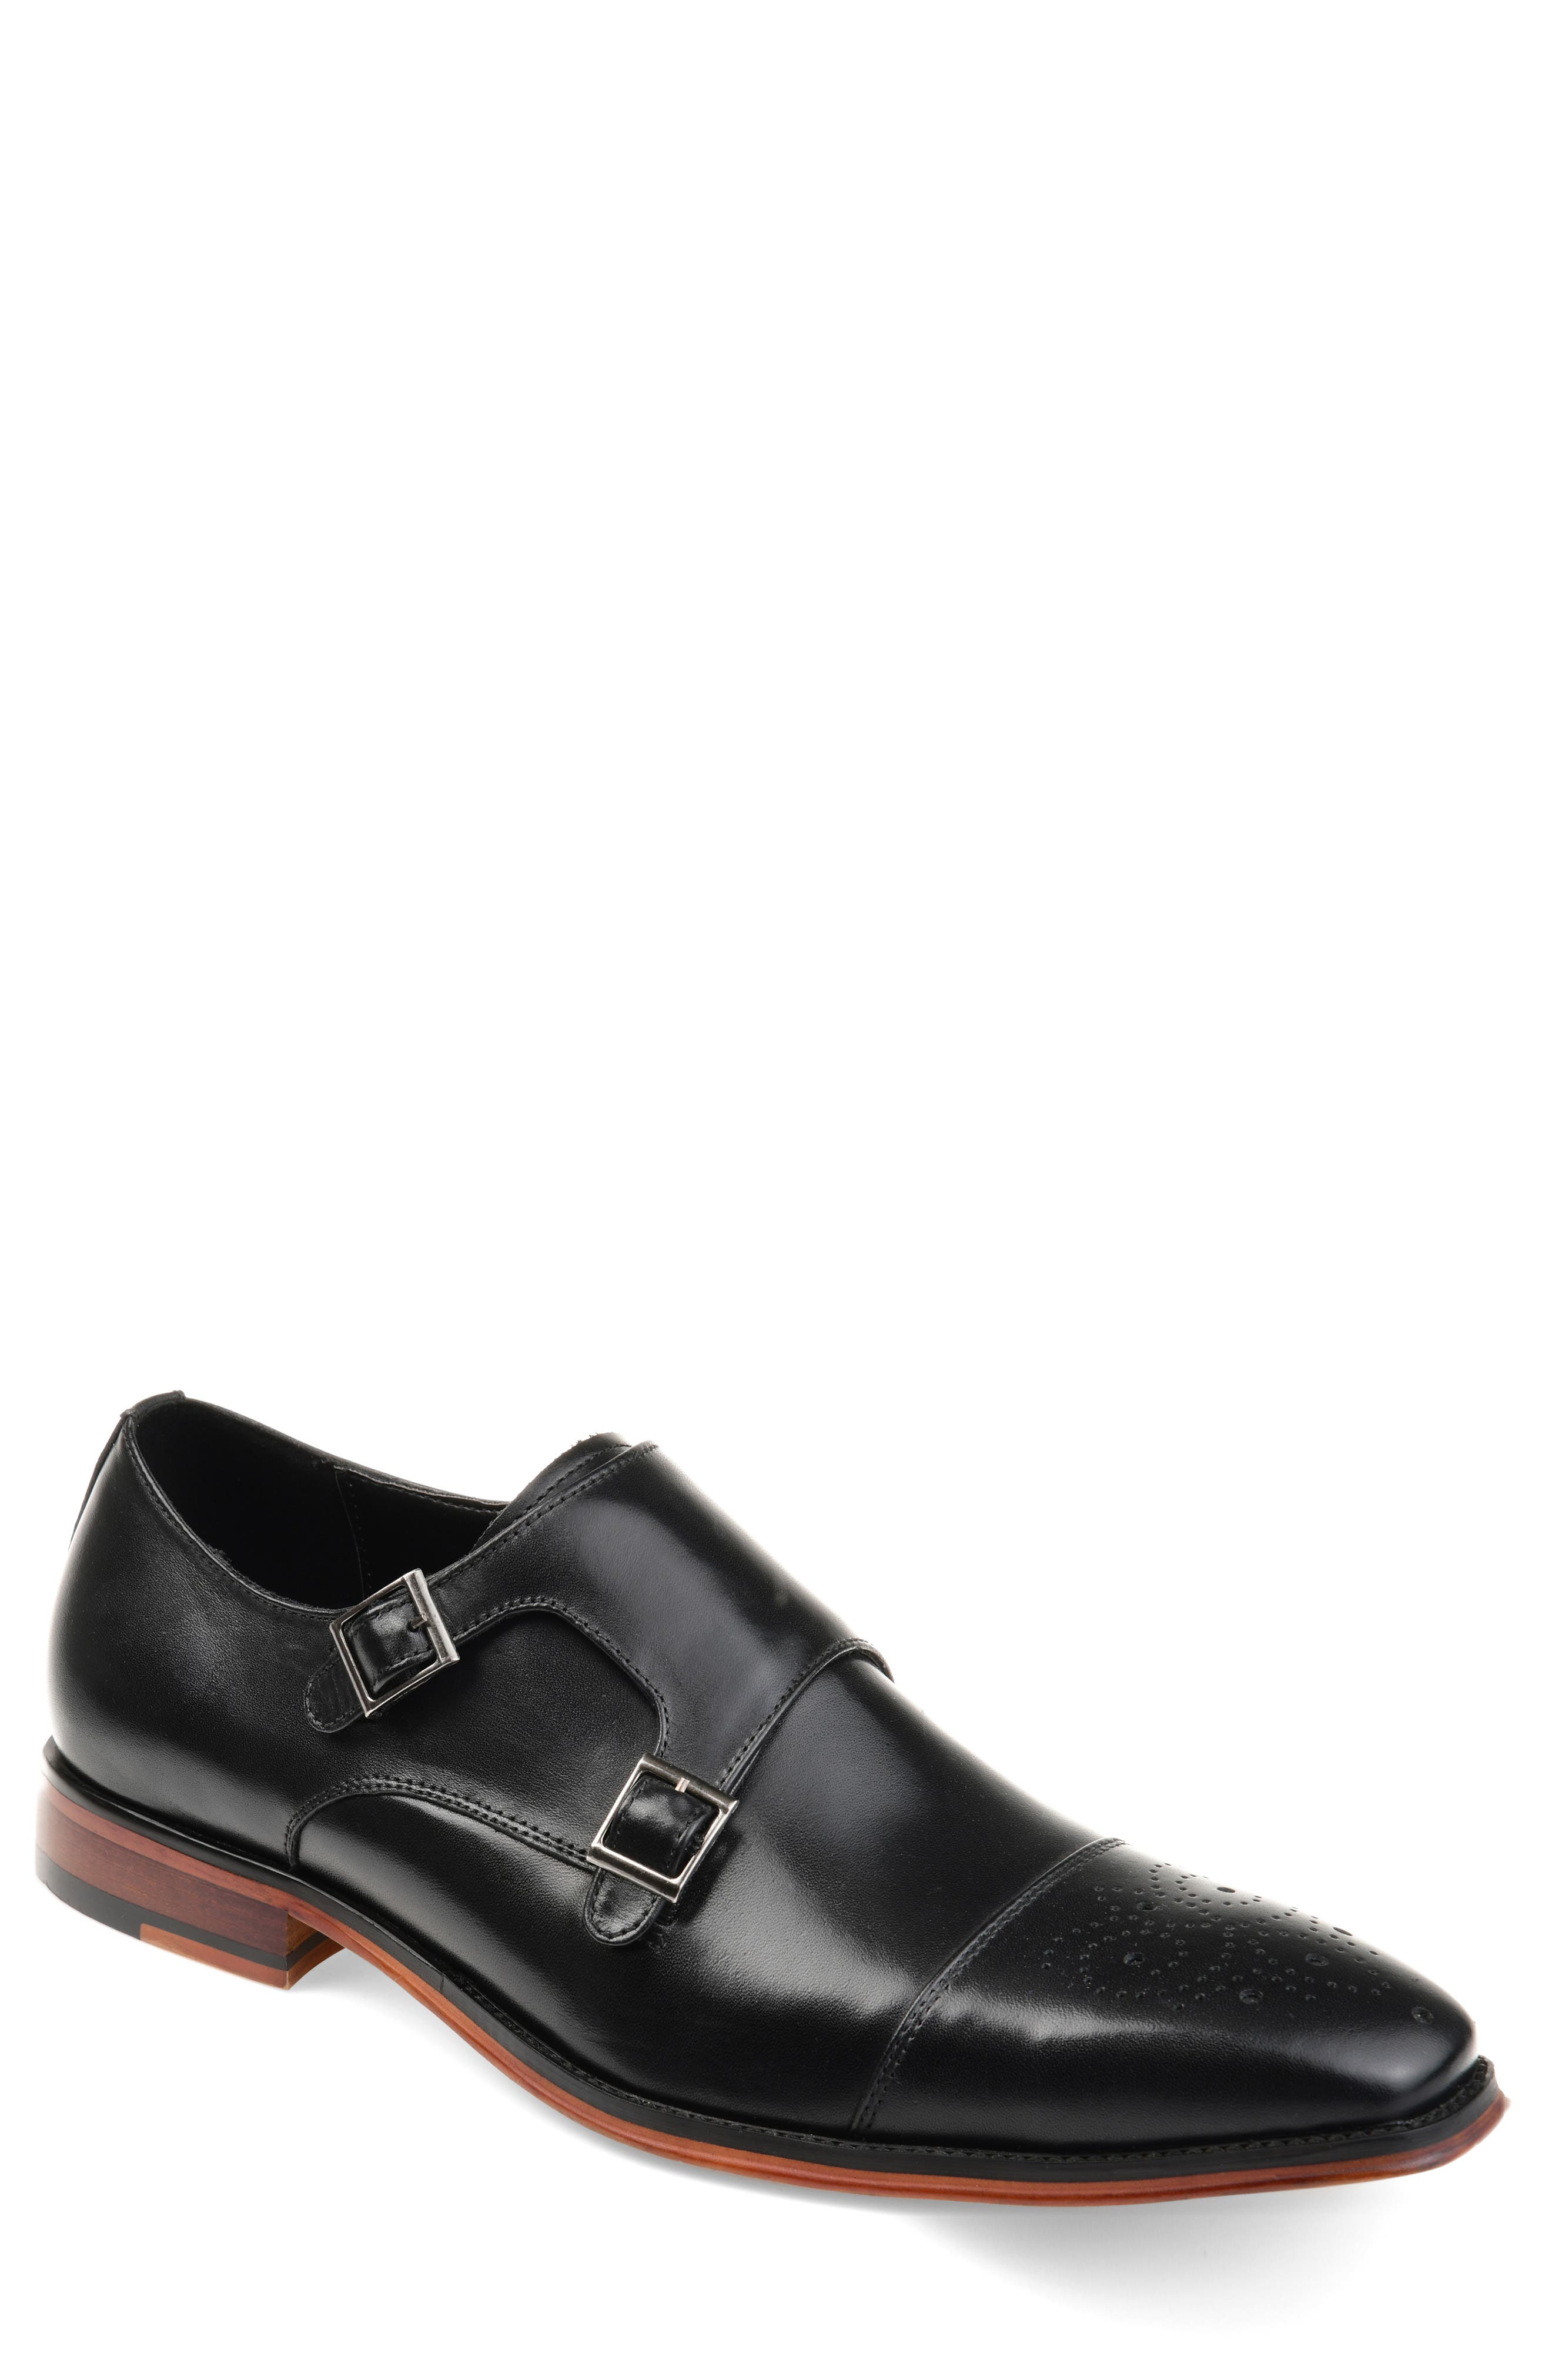 THOMAS AND VINE Rockwell Double Strap Cap Toe Monk Shoe, Main, color, BLACK LEATHER